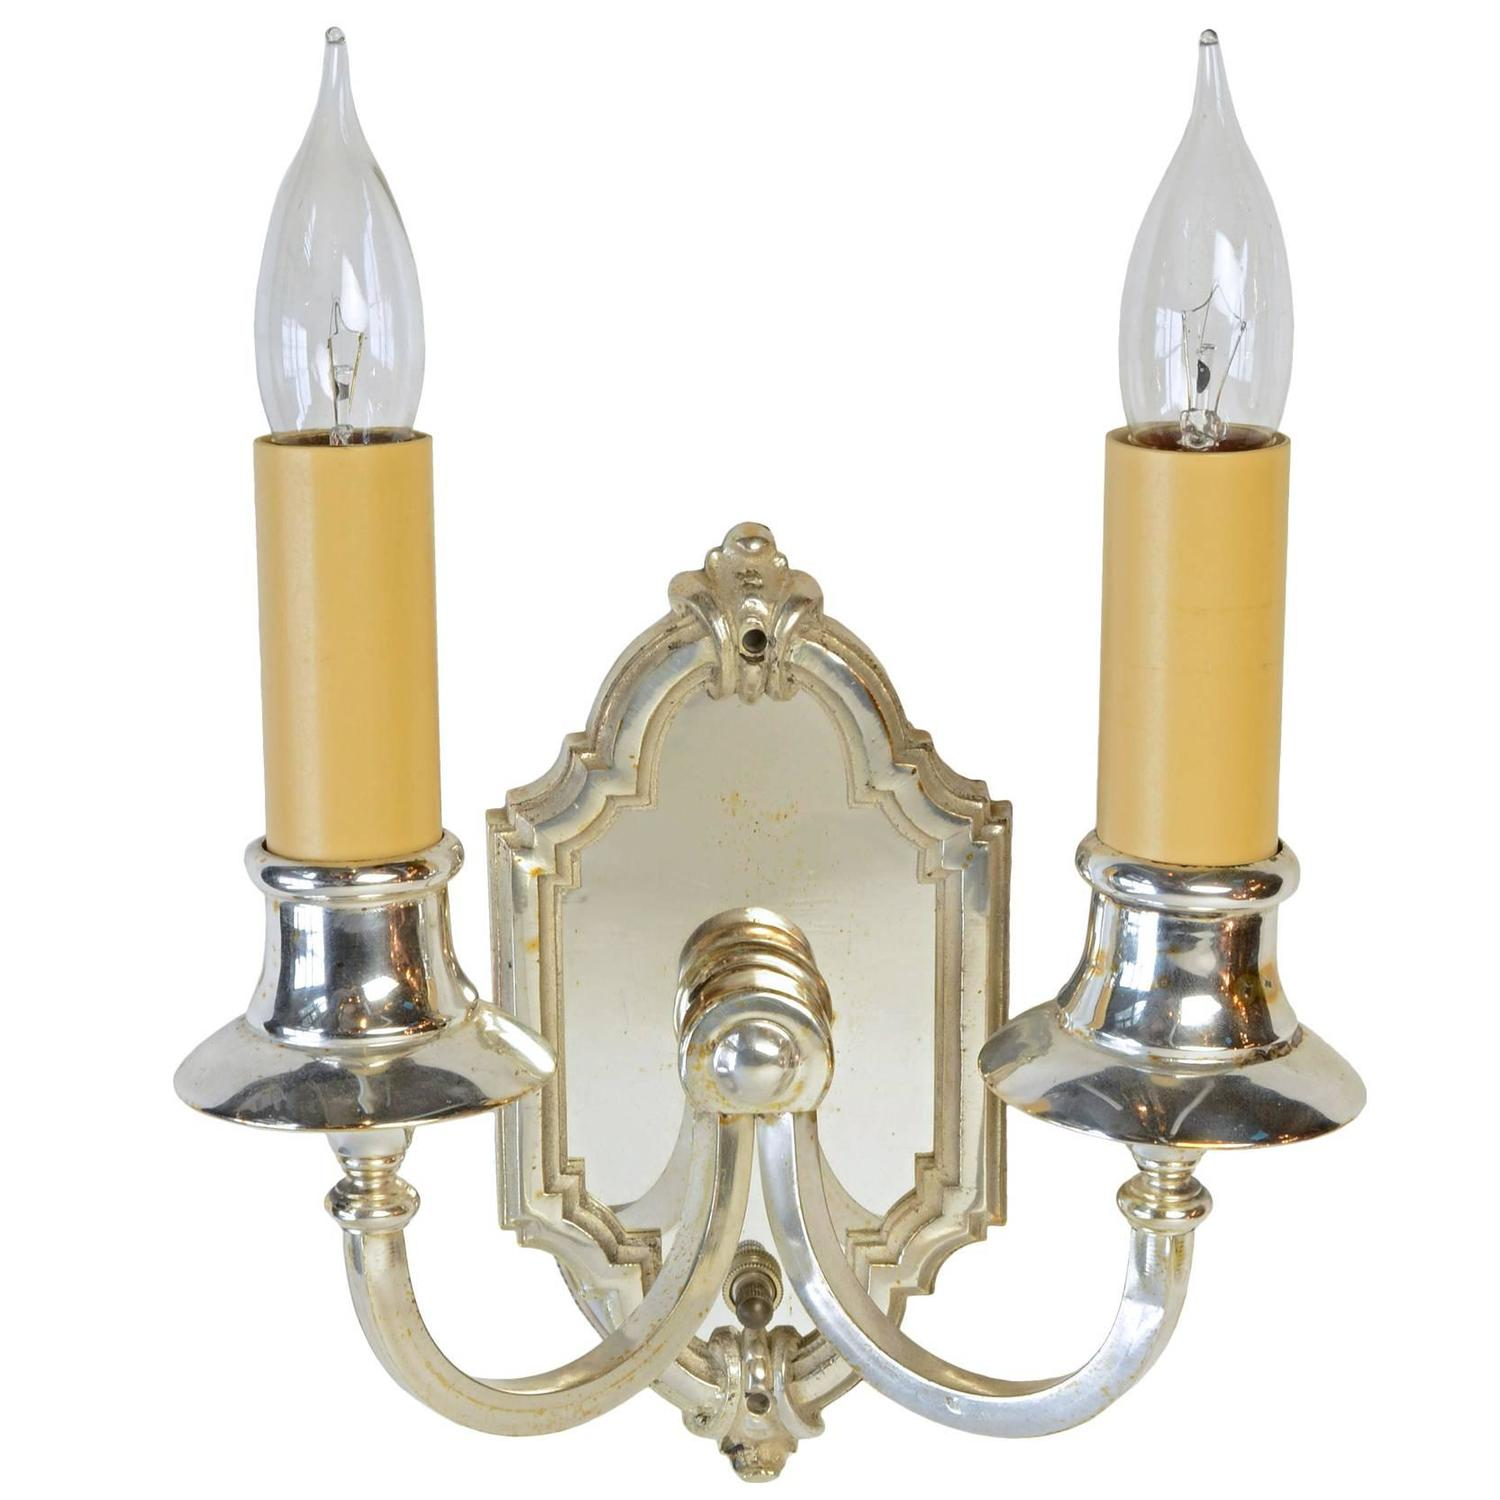 Silver Wall Sconces For Candles : Silver Plated Two-Candle Wall Sconce, circa 1915 at 1stdibs